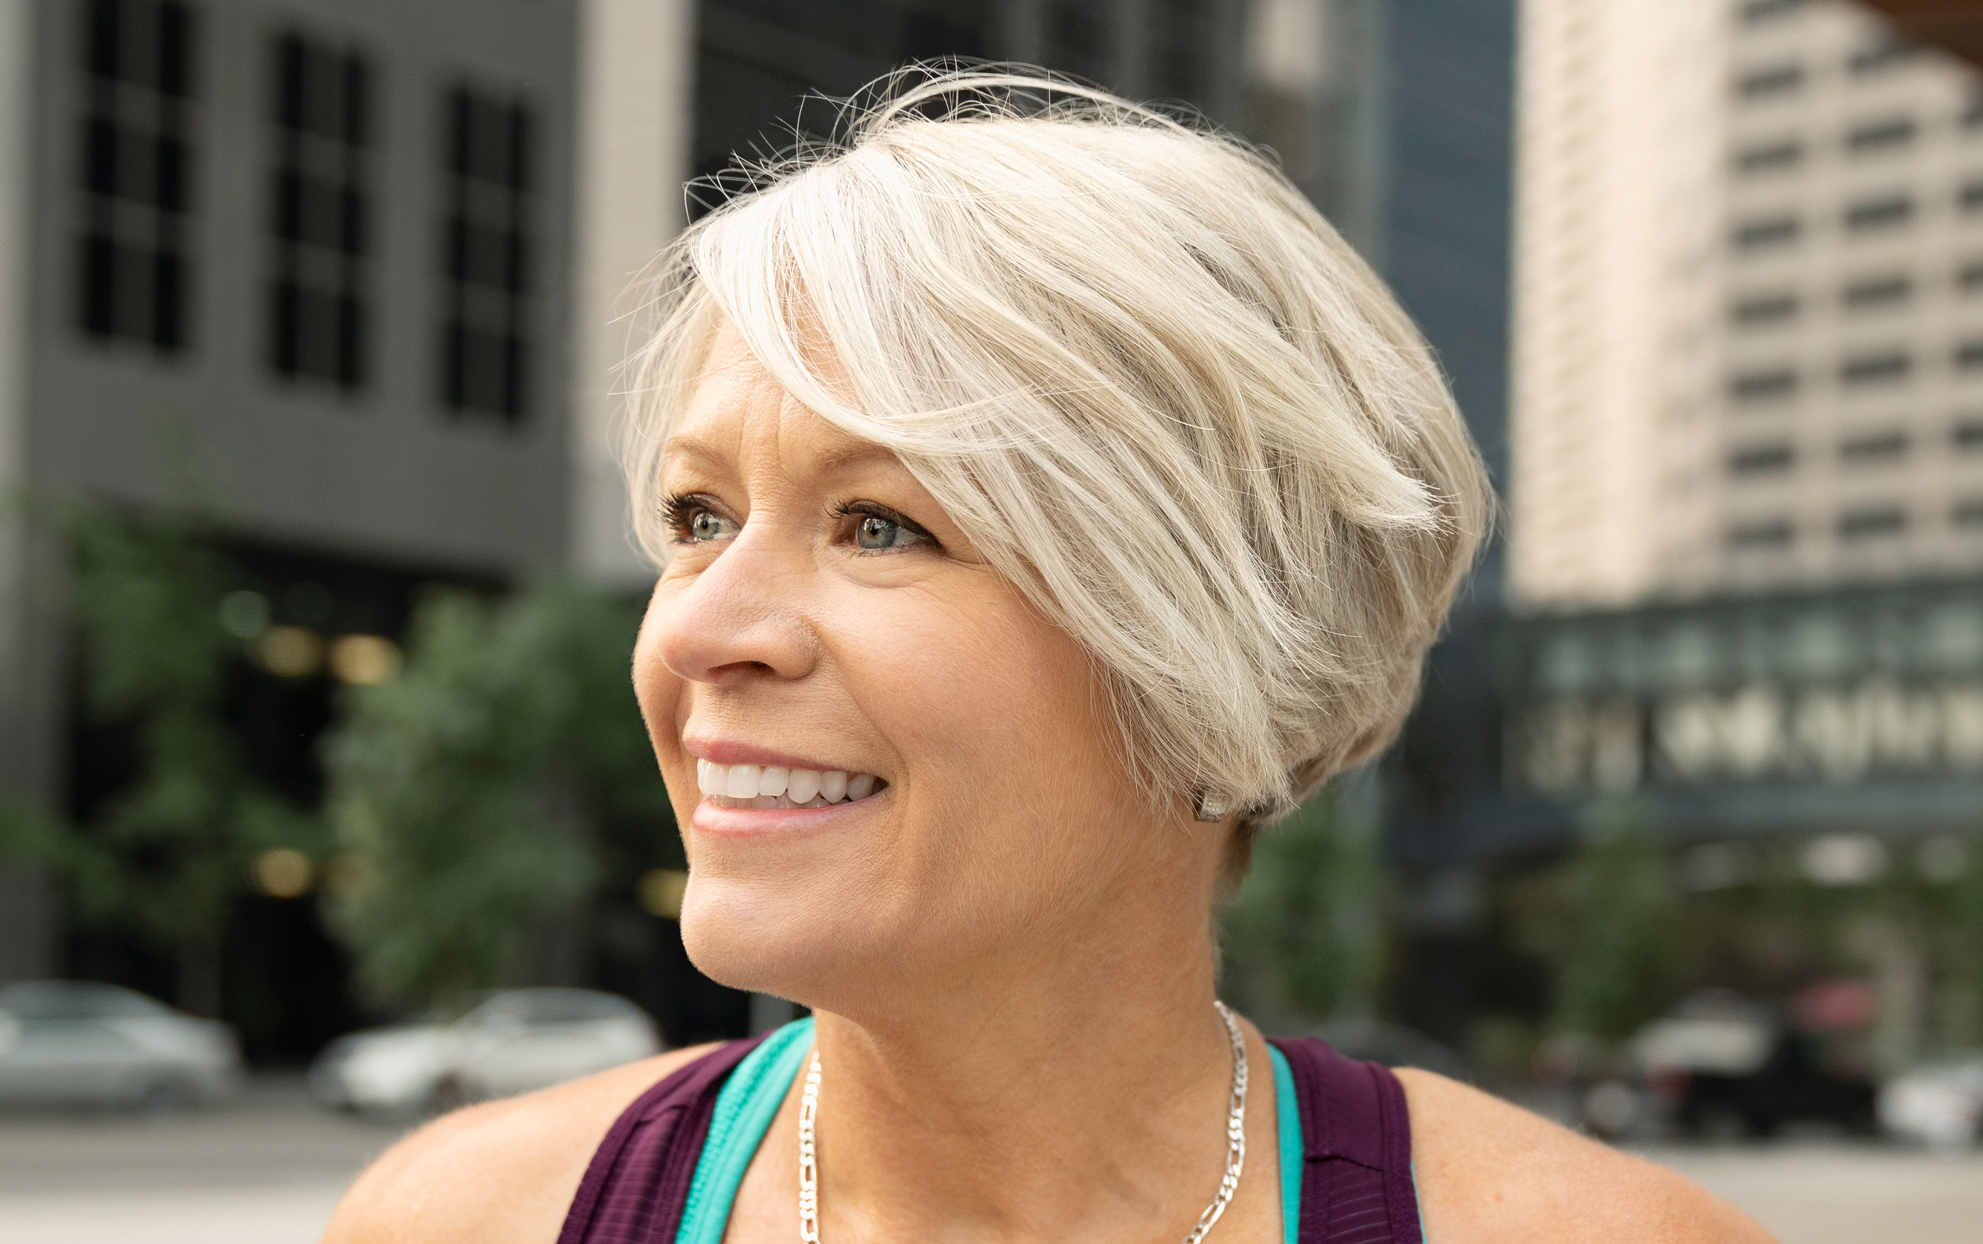 older woman with silver blonde short hair smiling outside